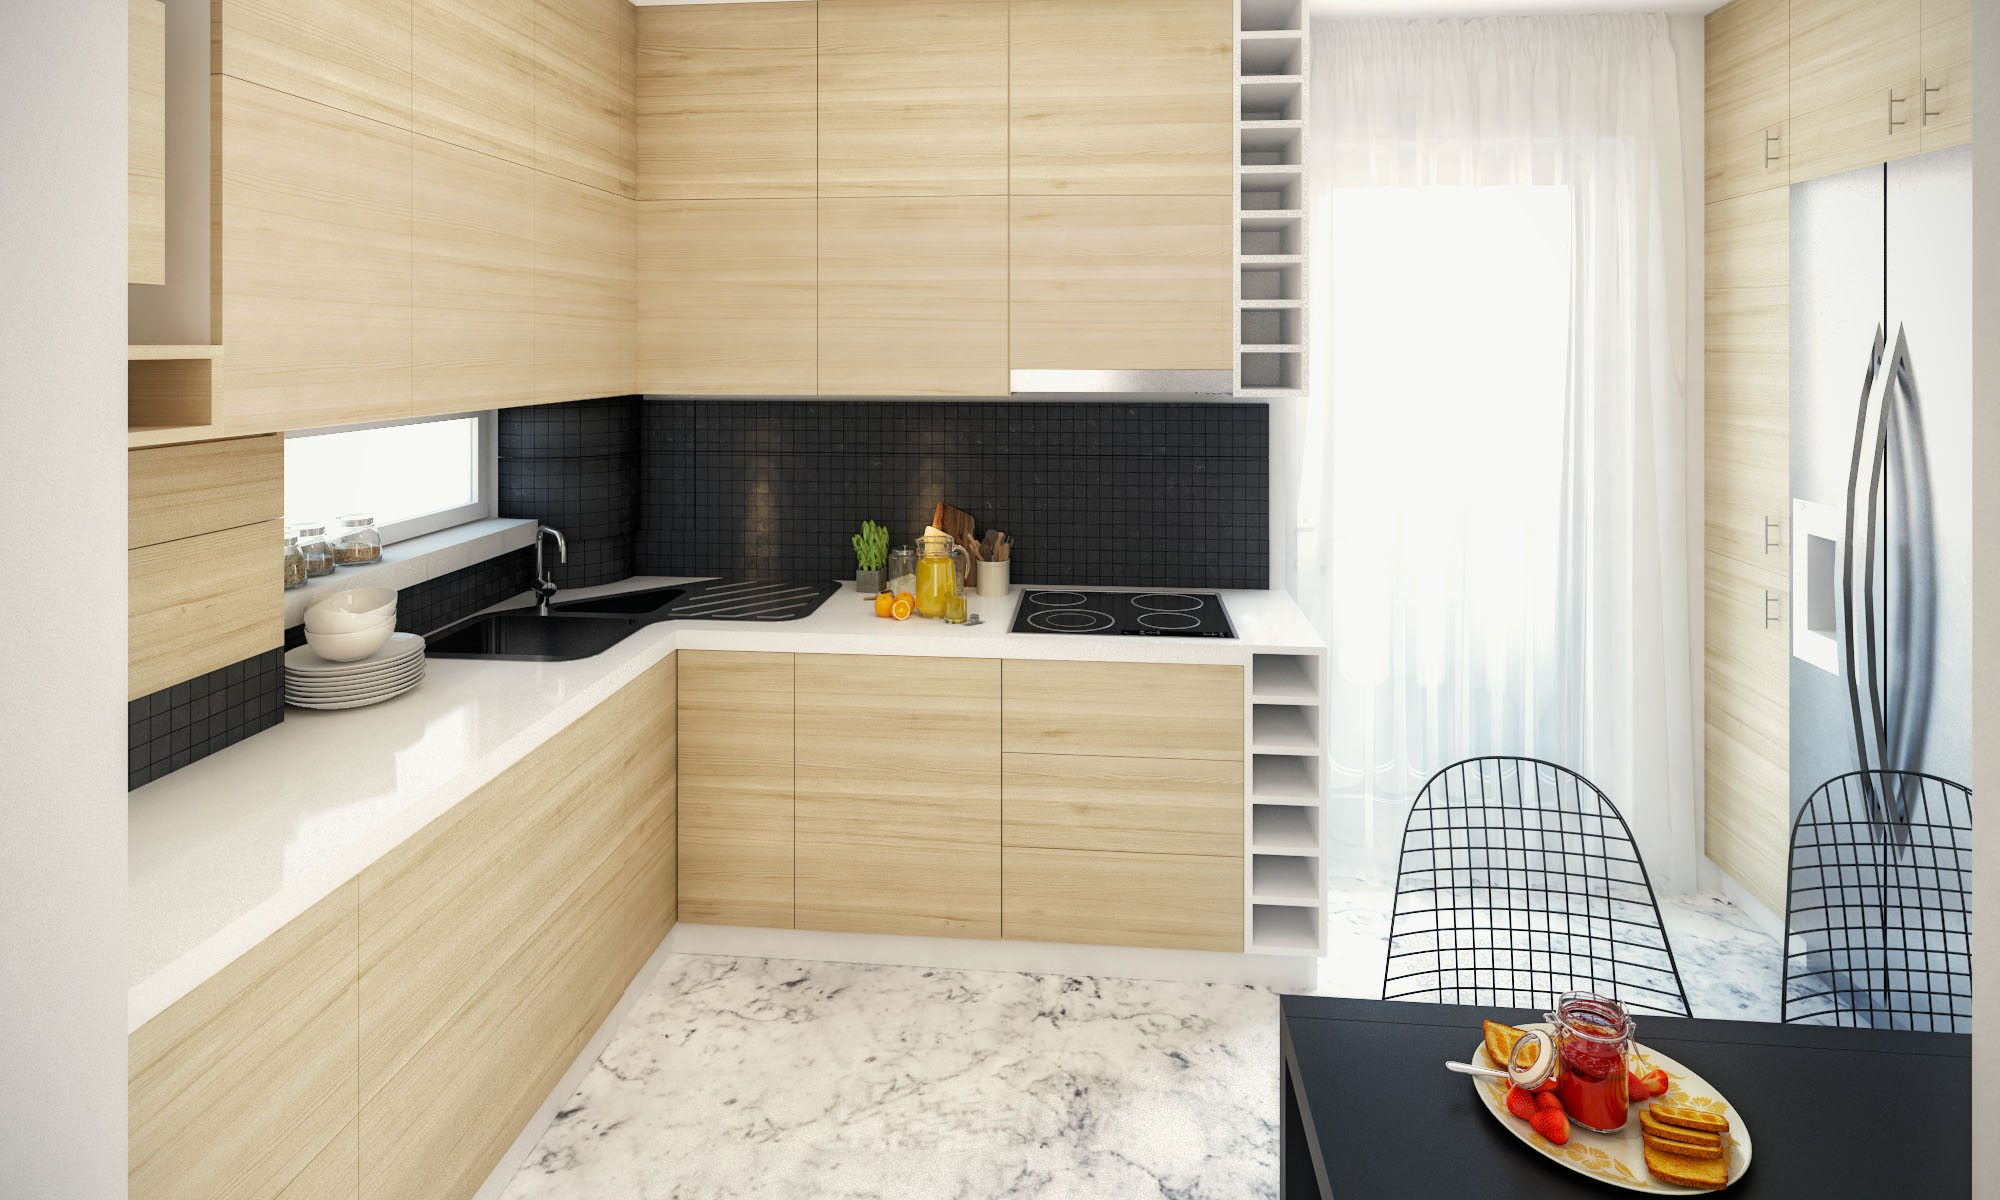 archicostudio_ren-kl05_kitchen